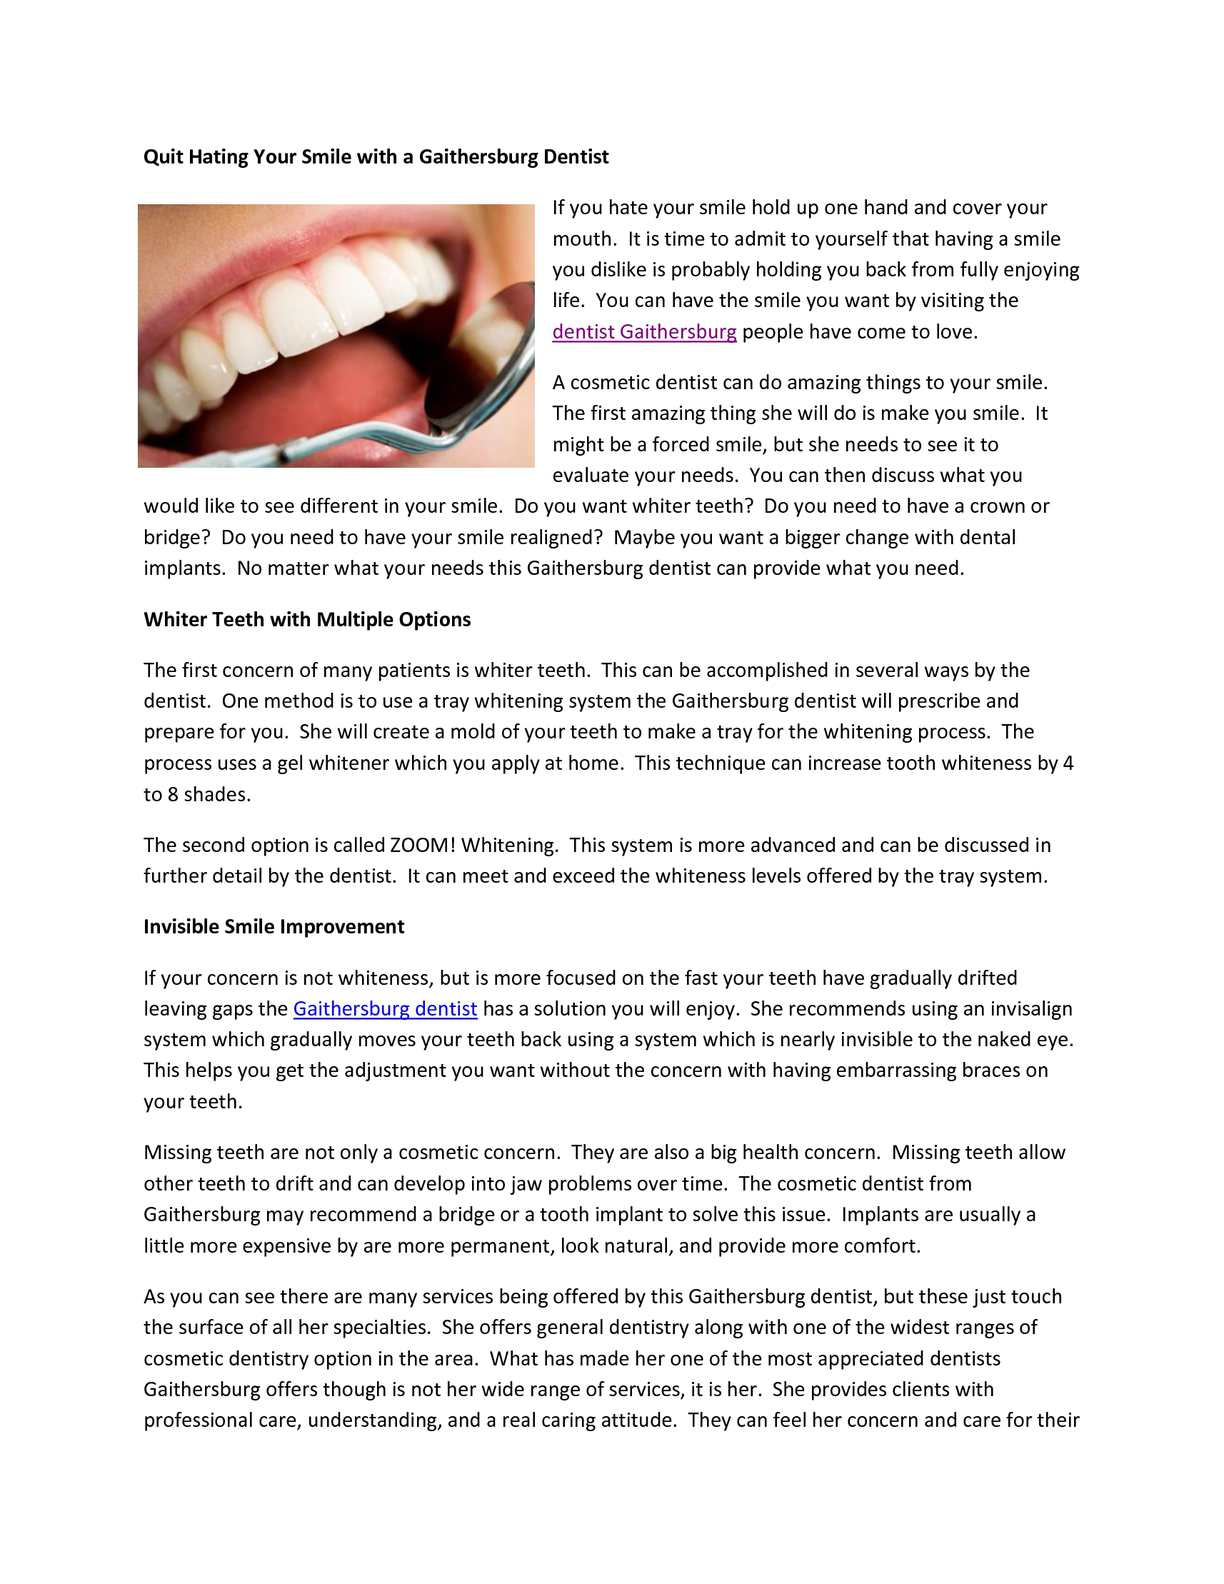 Calaméo - Quit Hating Your Smile with a Gaithersburg Dentist